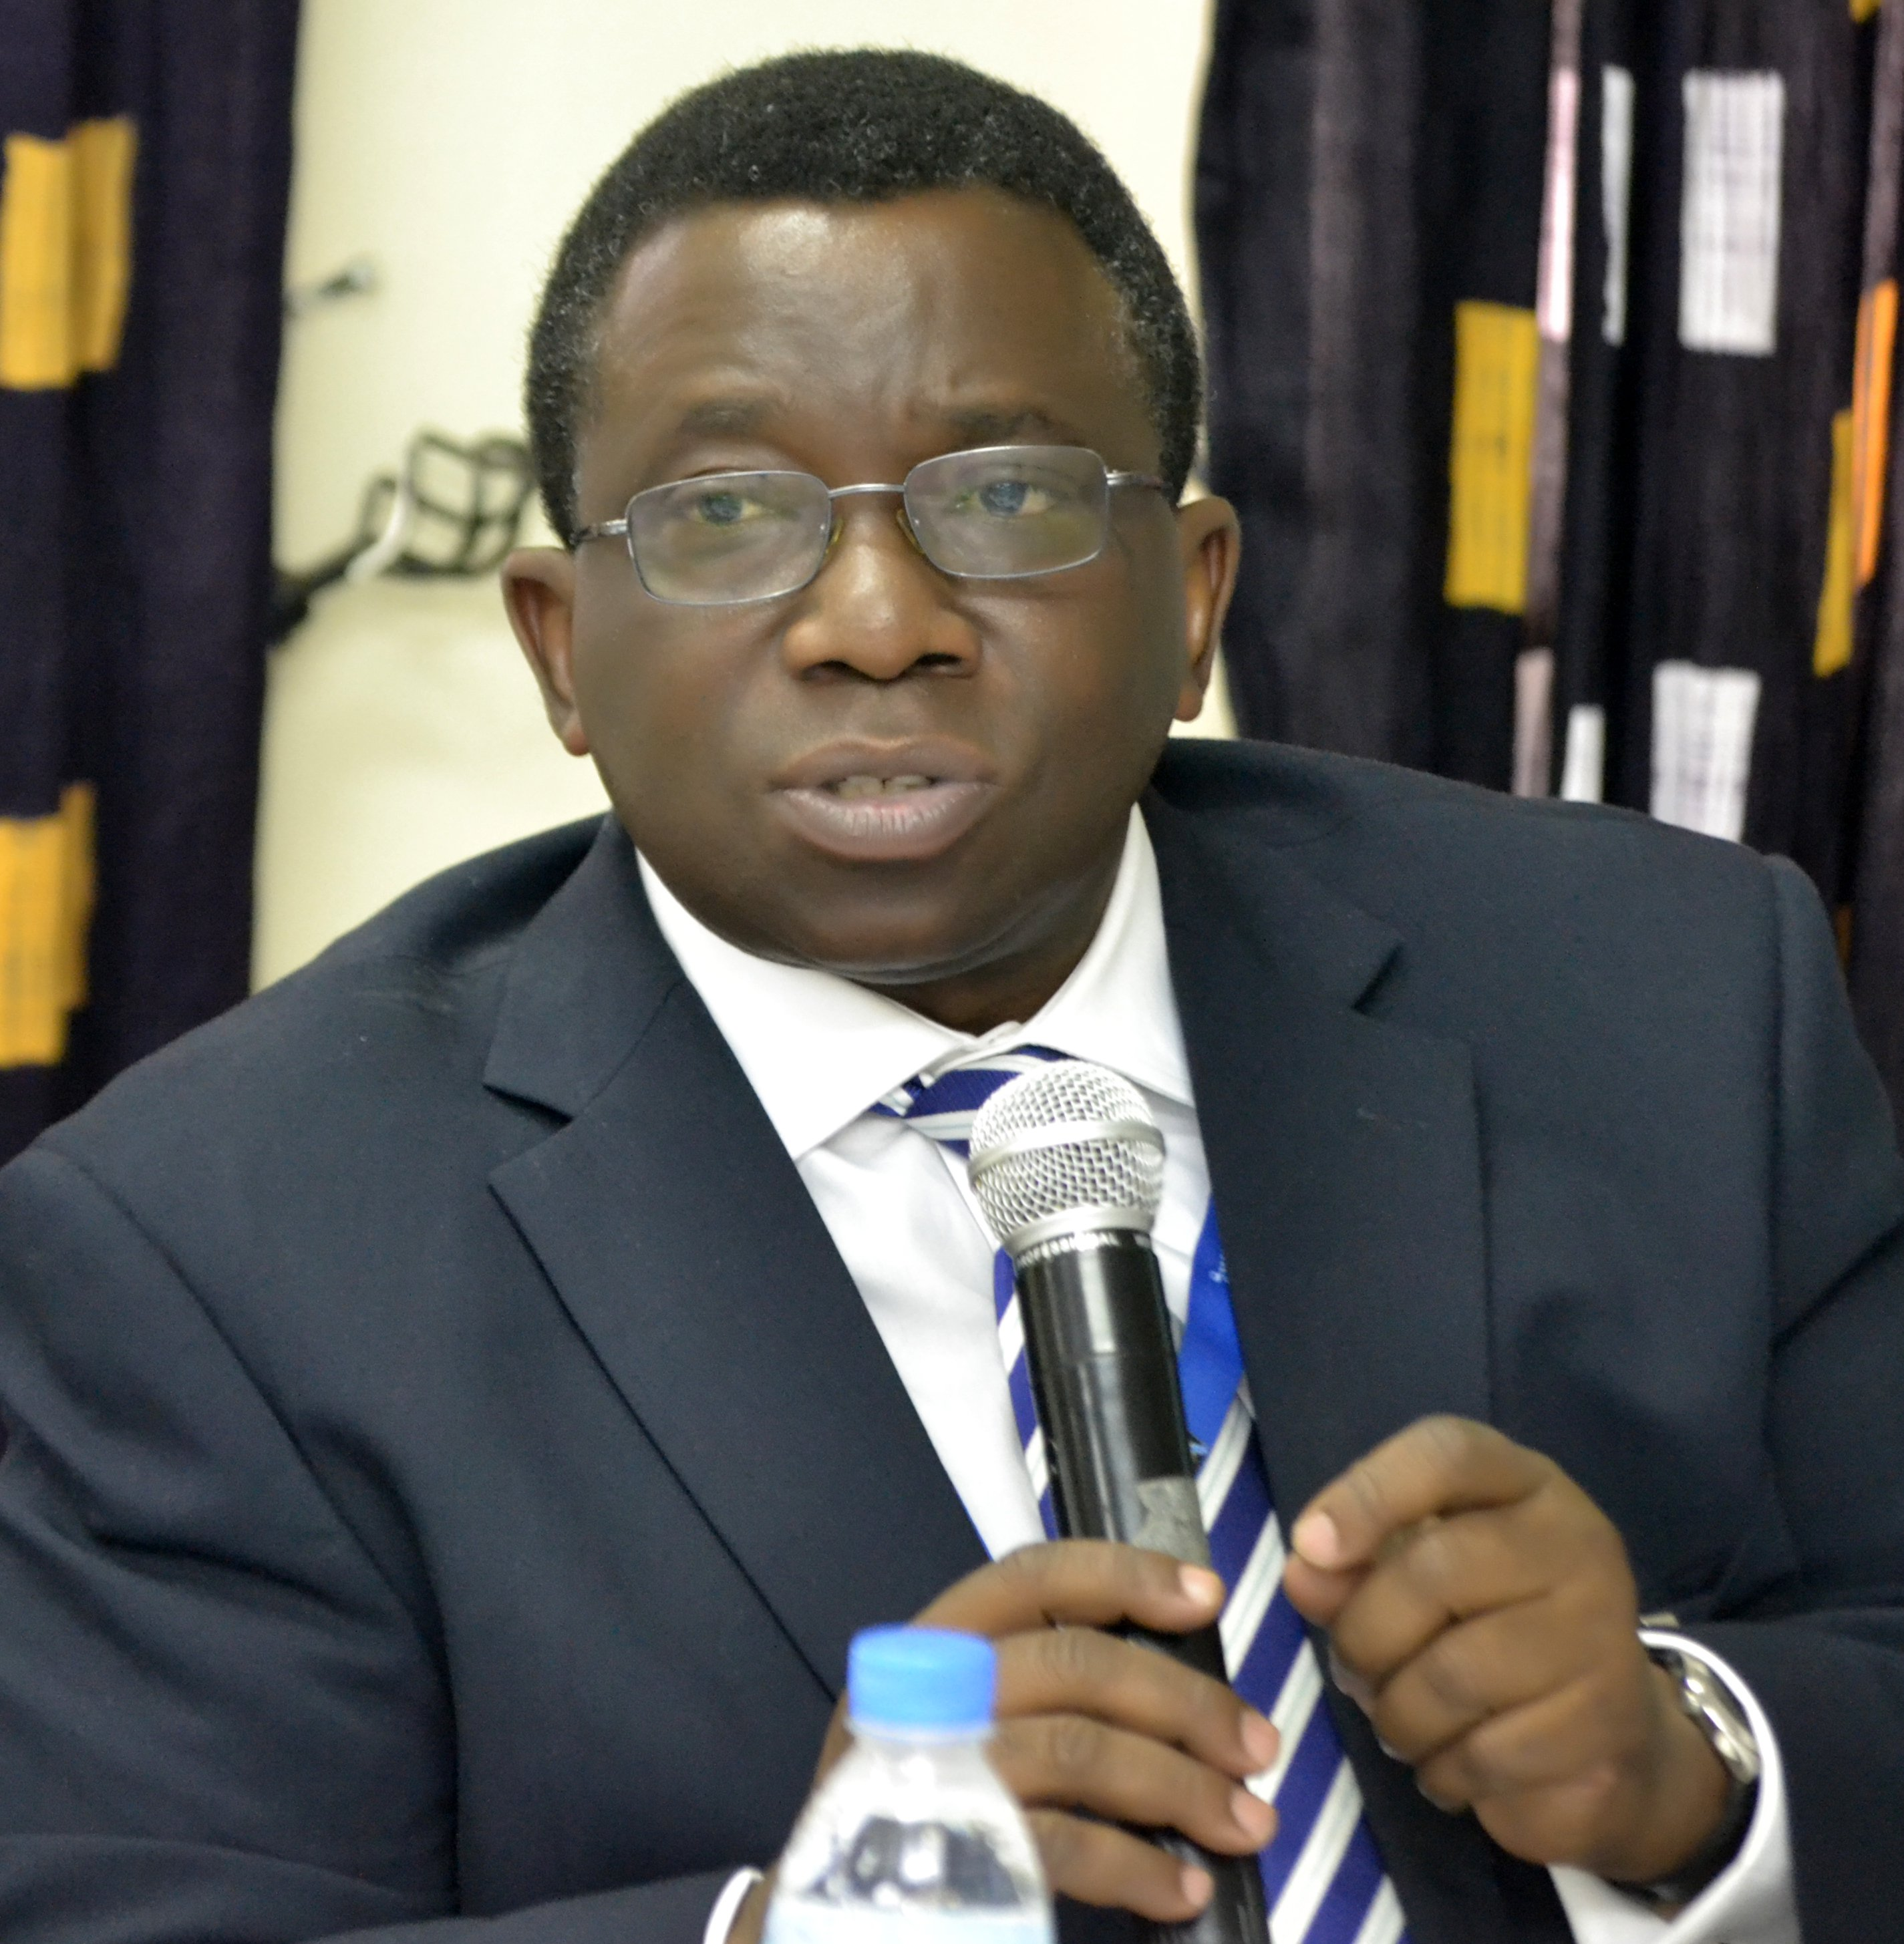 Adewole, ex-health minister's son kidnapped in Oyo